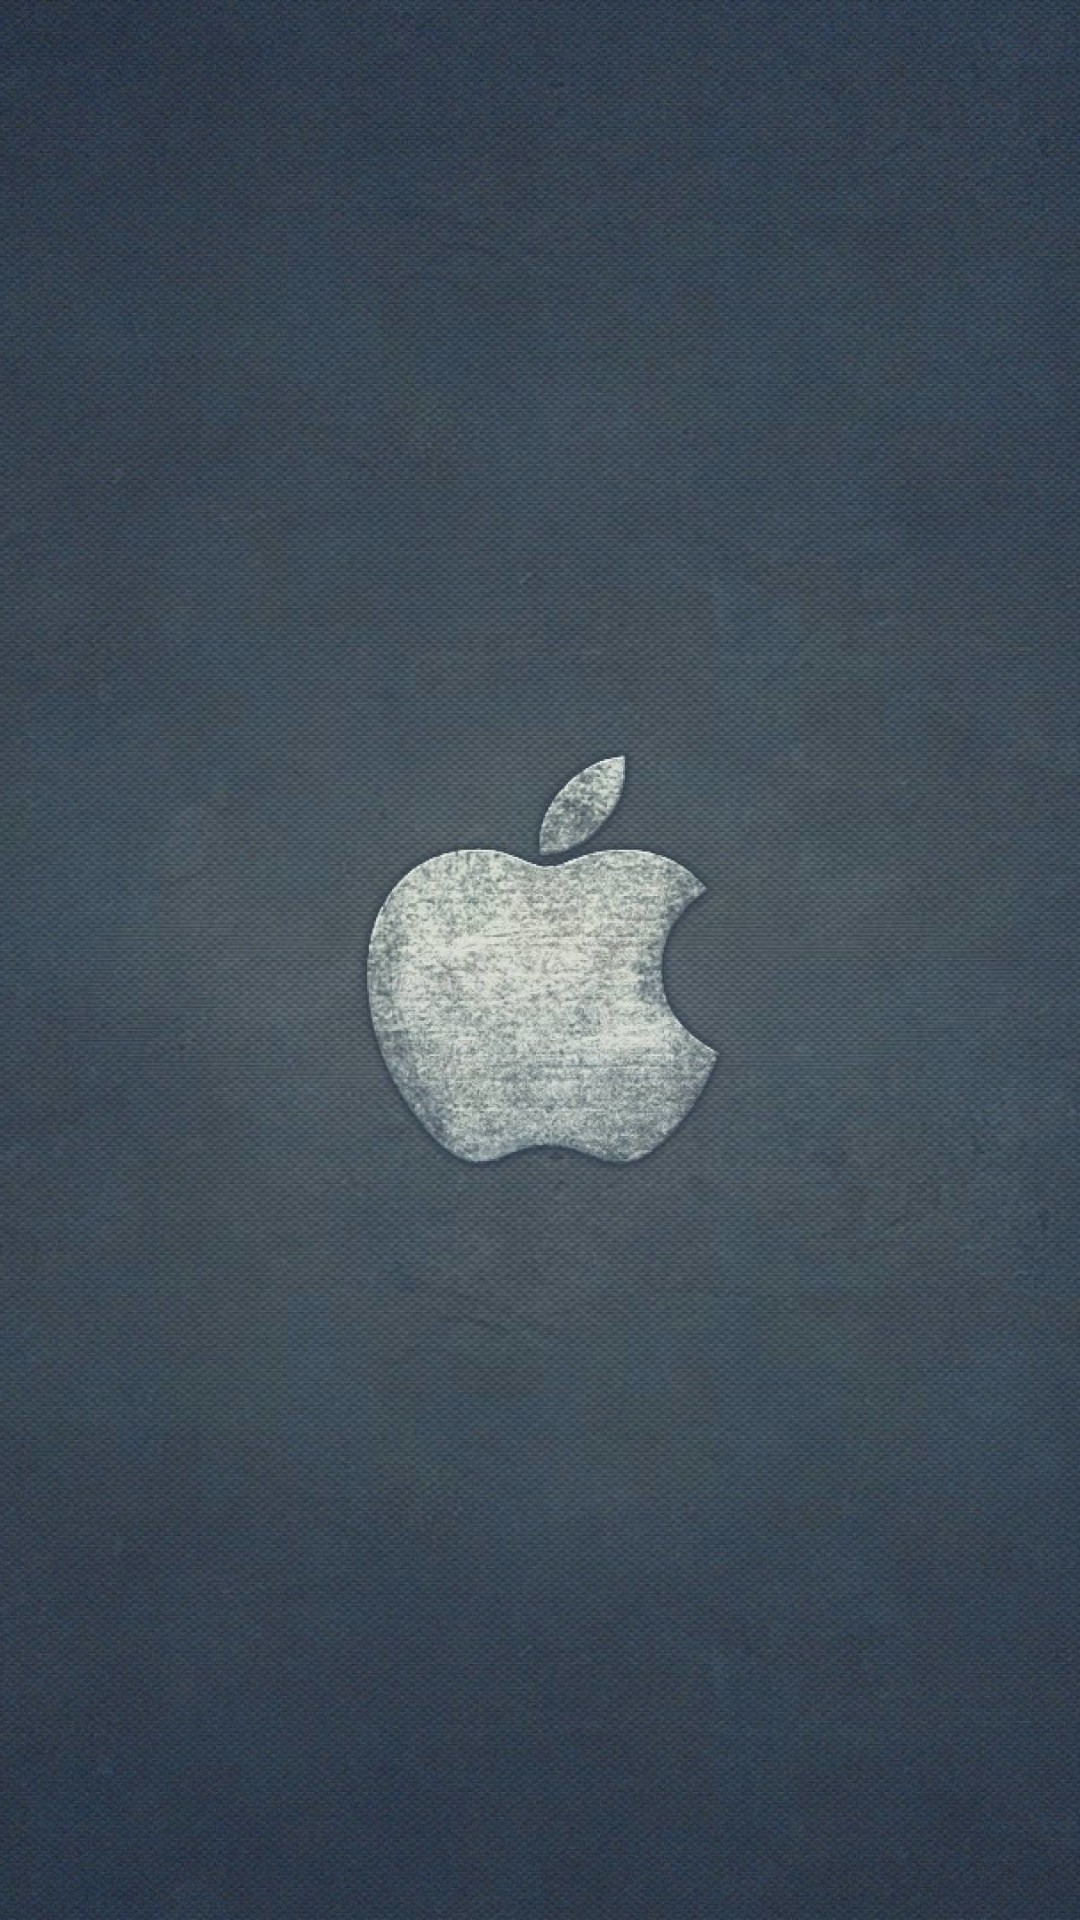 Grunge Apple Logo Wallpaper for SONY Xperia Z2